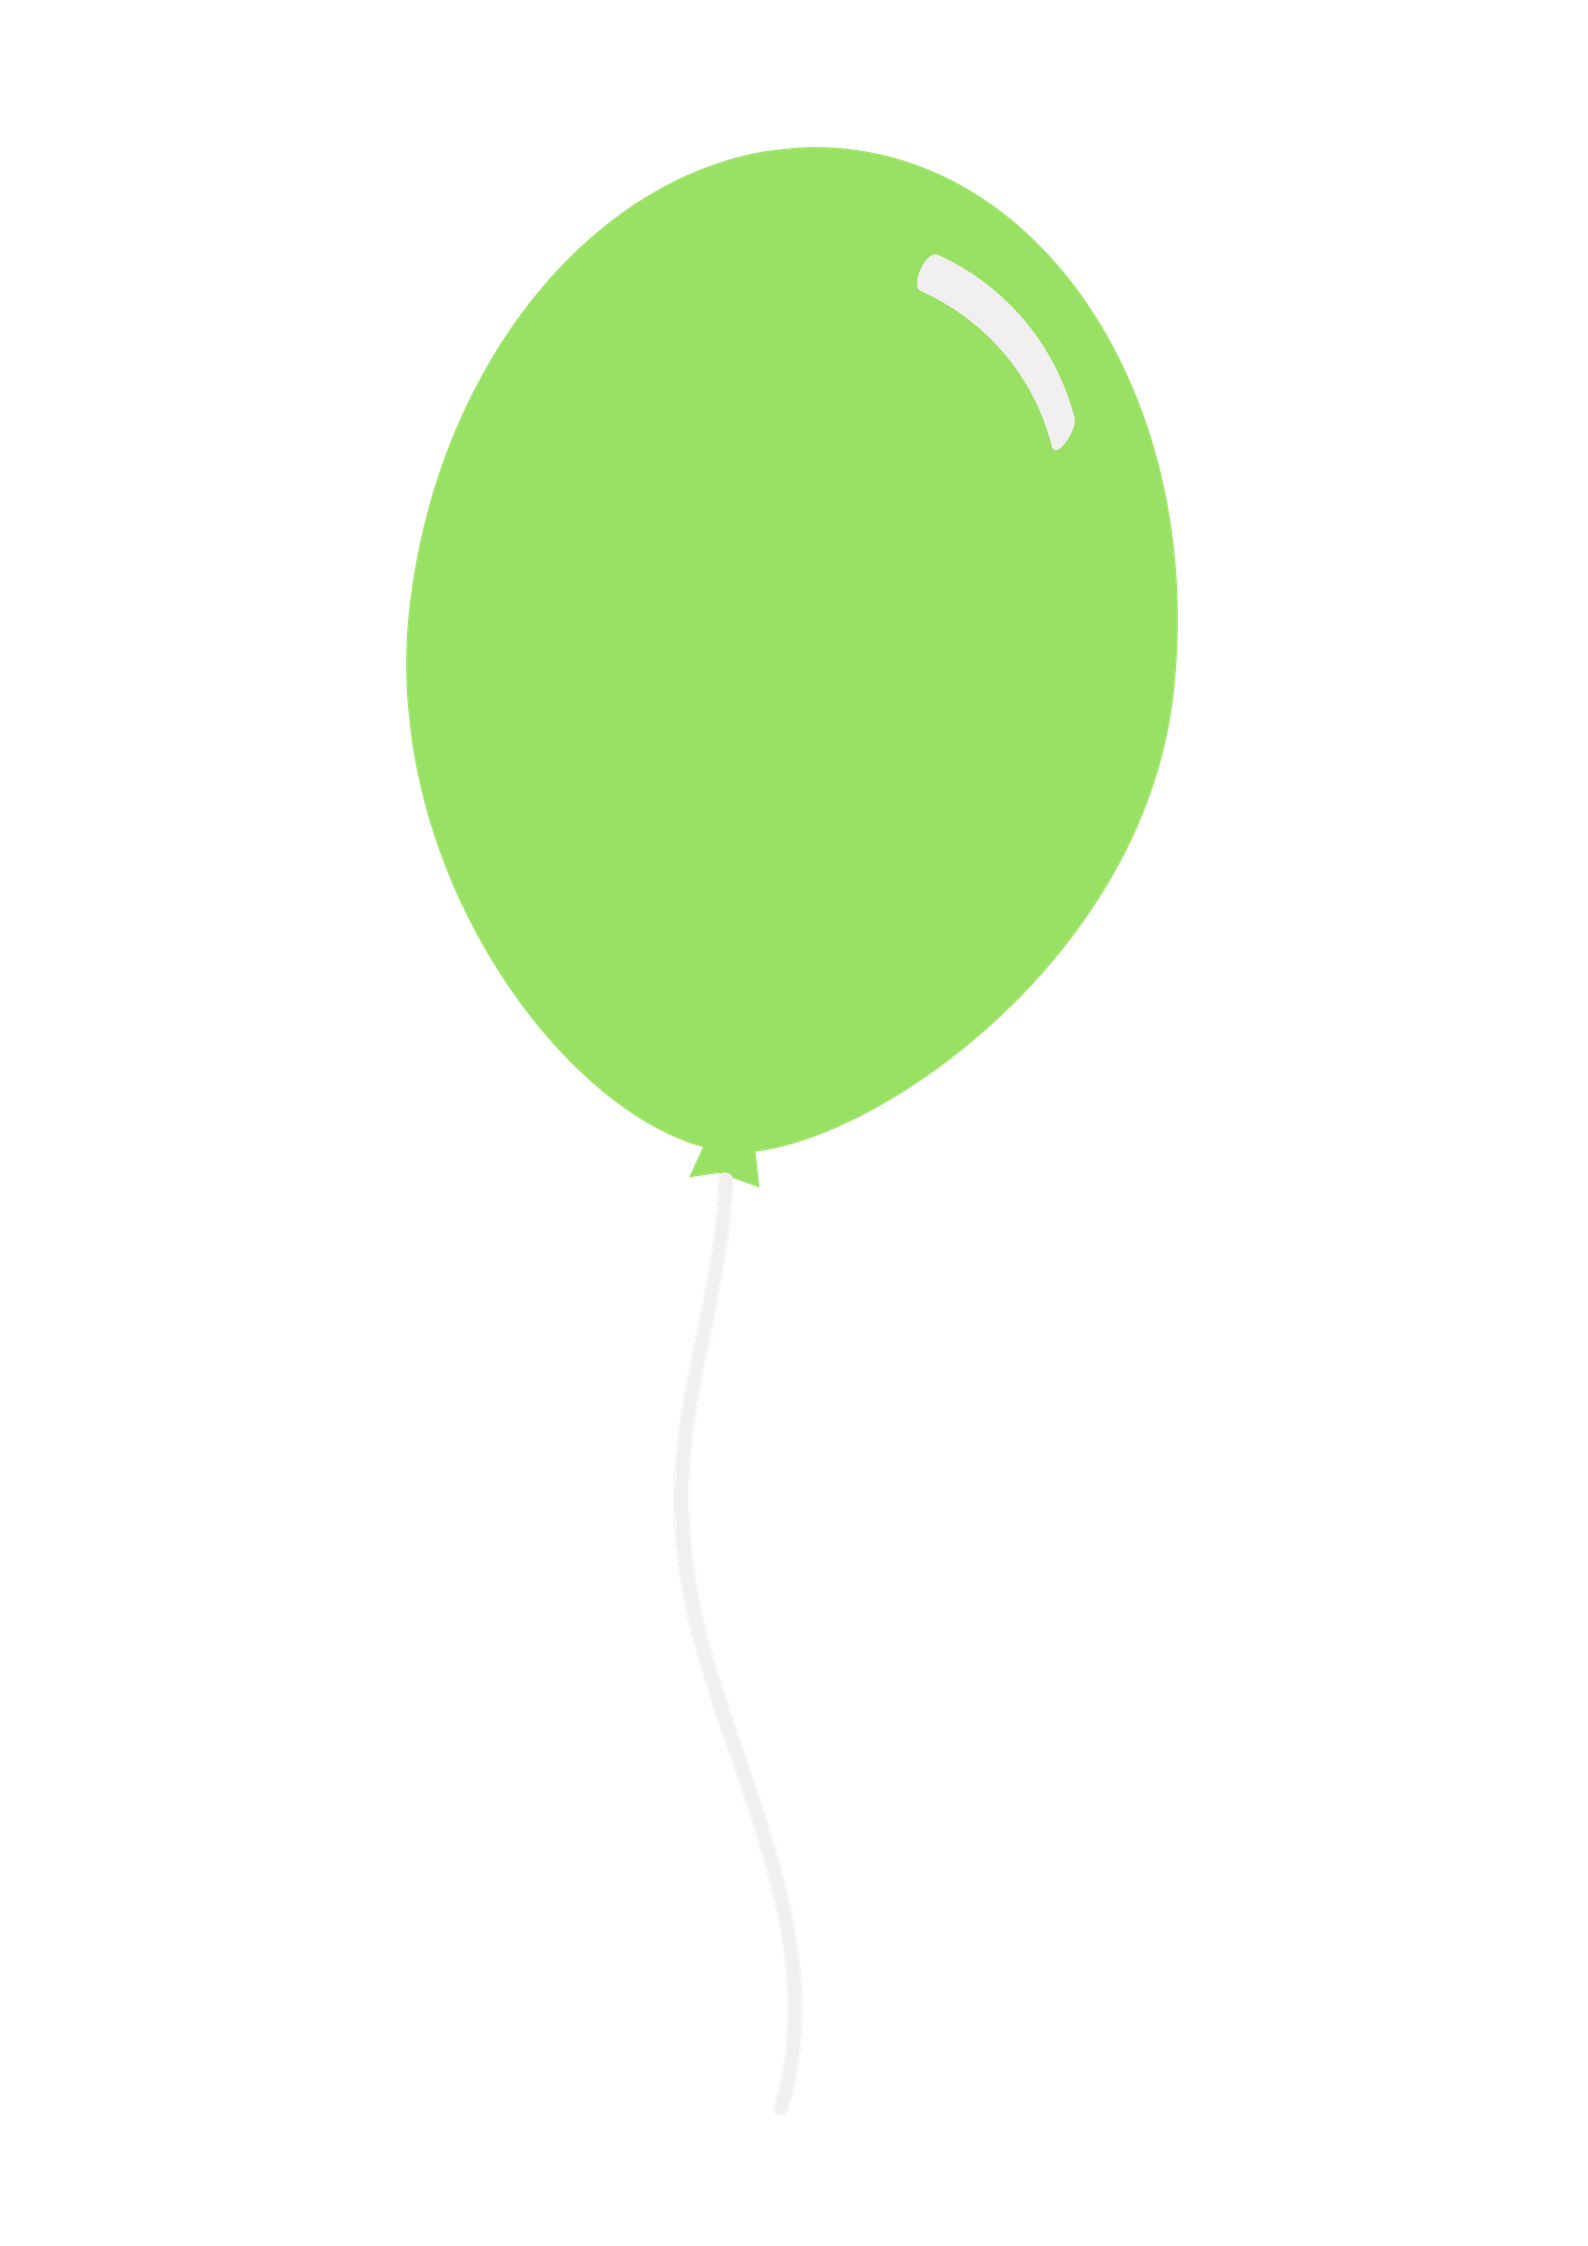 Green balloon png Free Download.